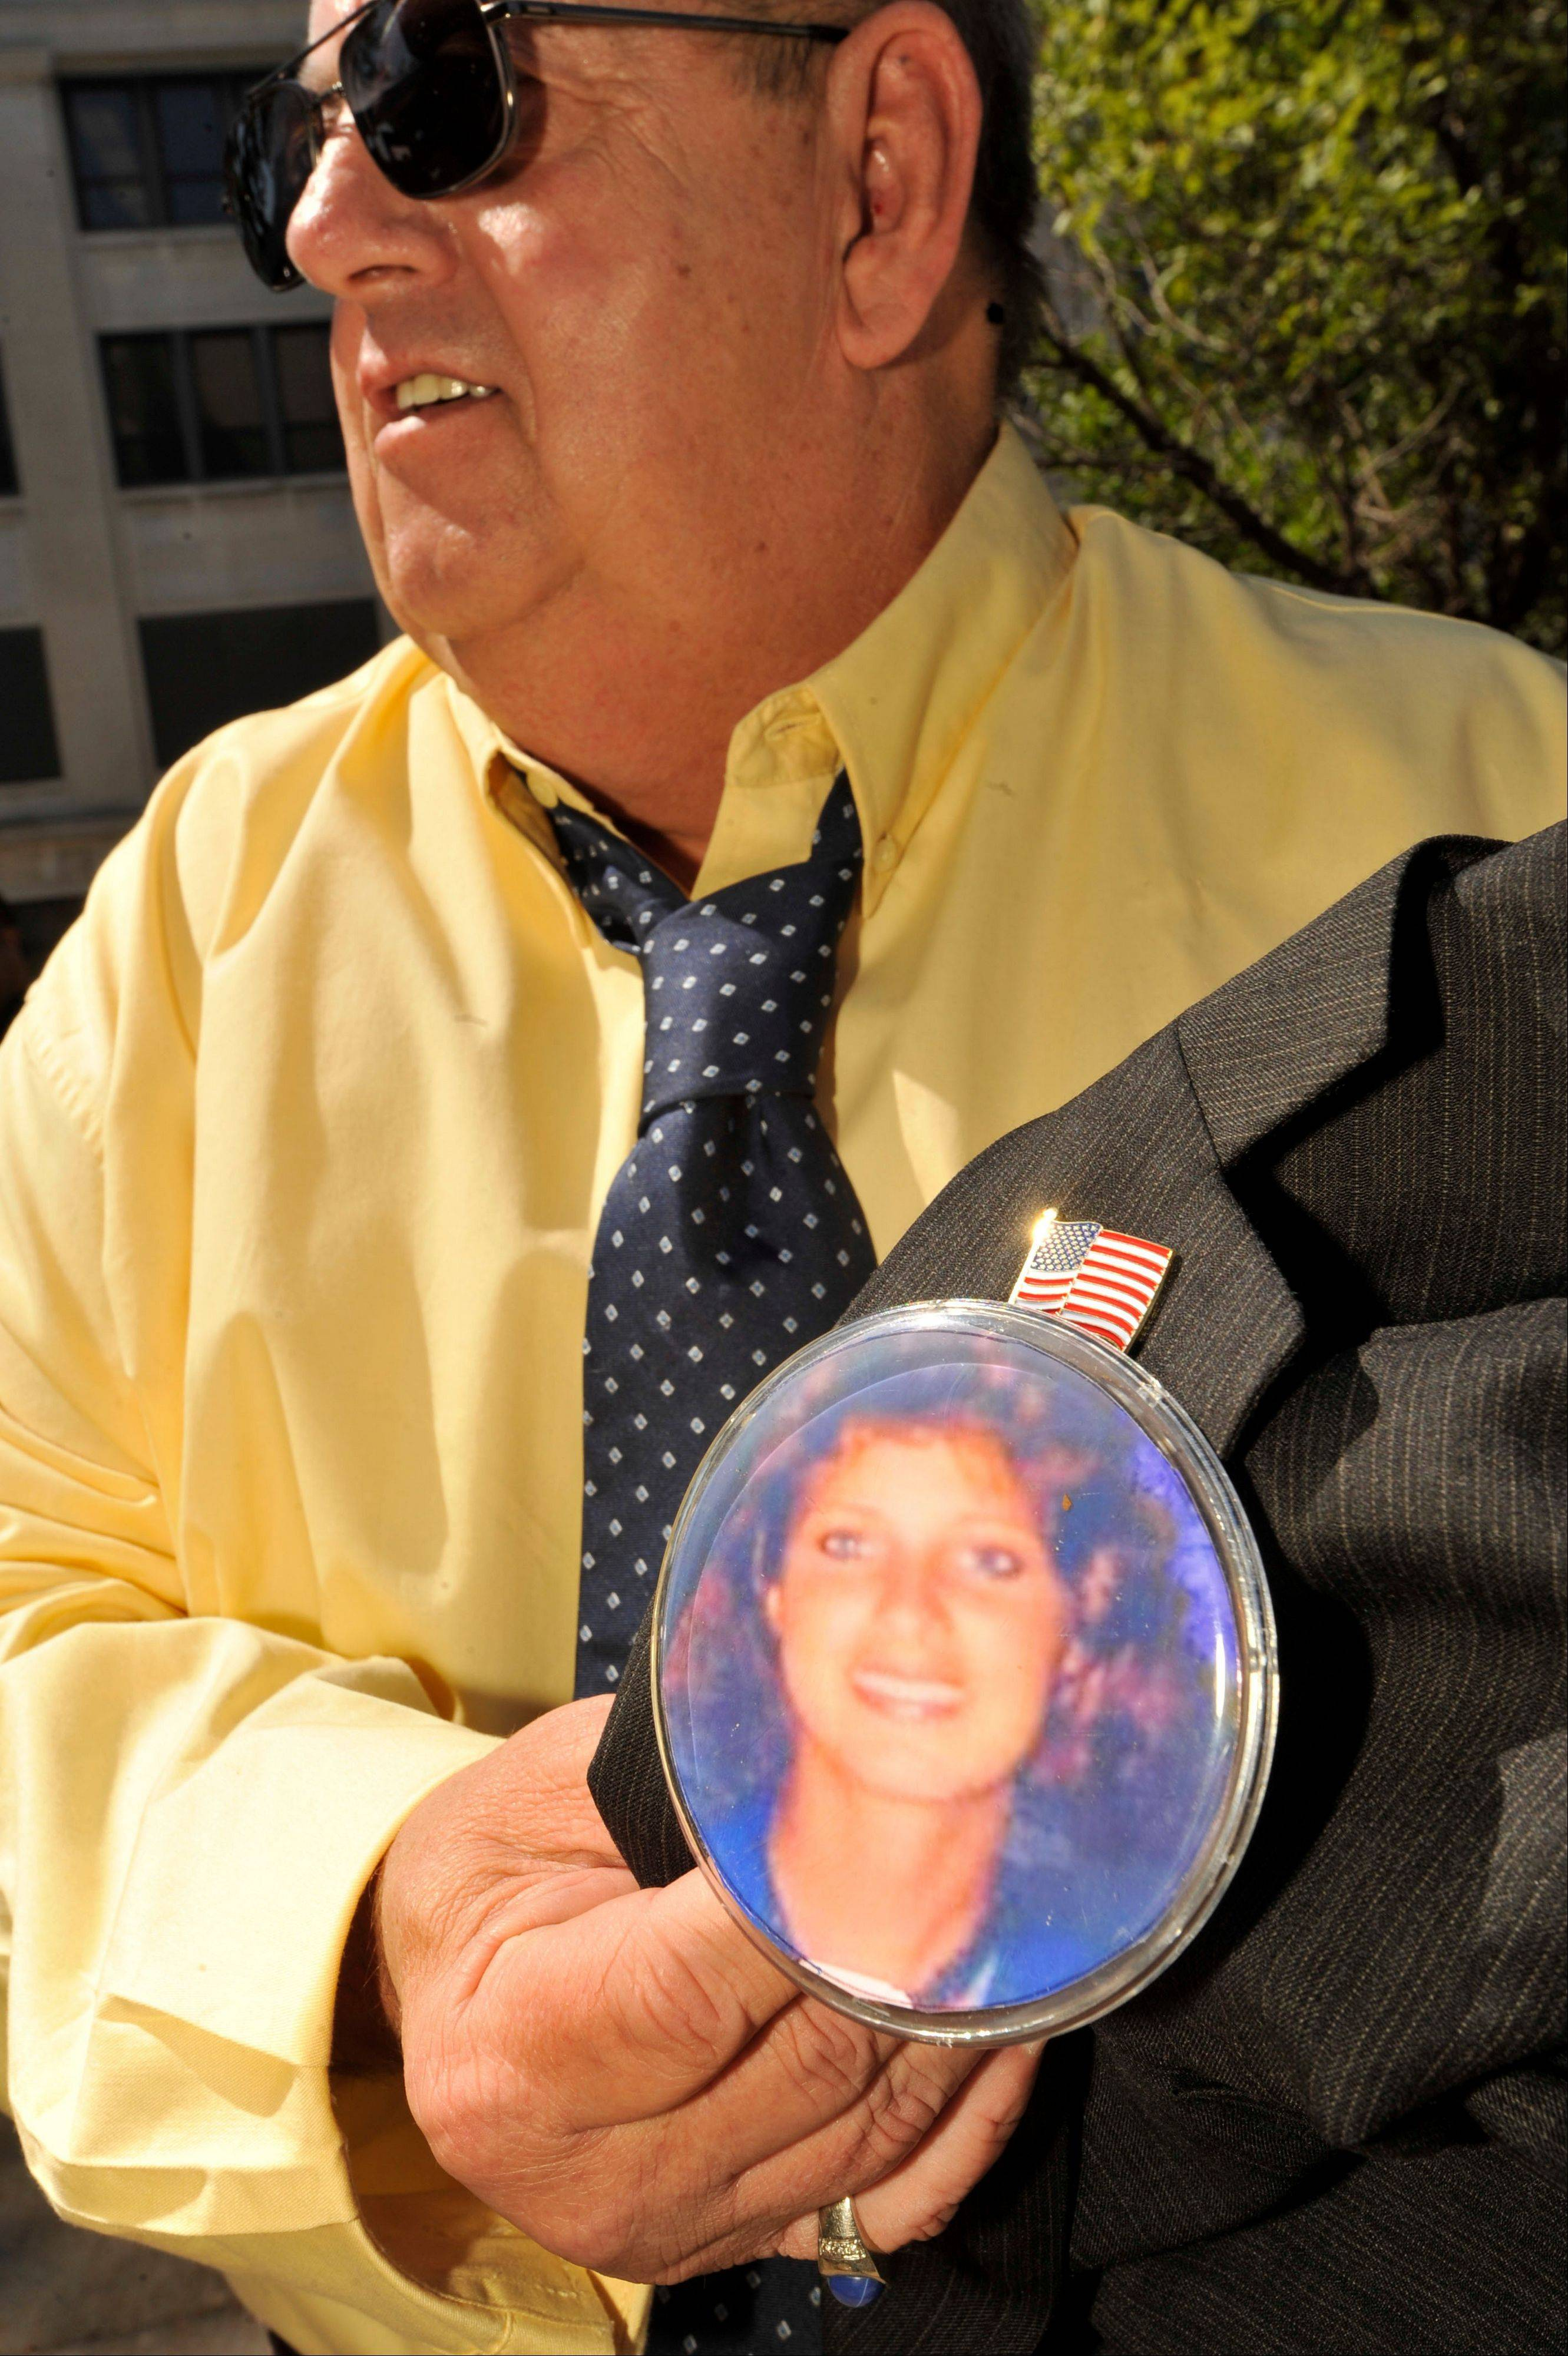 Mitch Doman, brother-in-law of Kathleen Savio, holds a photo button of late Savio outside the Will County Courthouse during the second day of jury deliberations in former Bolingbrook police officer Drew Peterson's murder trial, Thursday, Sept. 6, 2012, in Joliet, Ill.